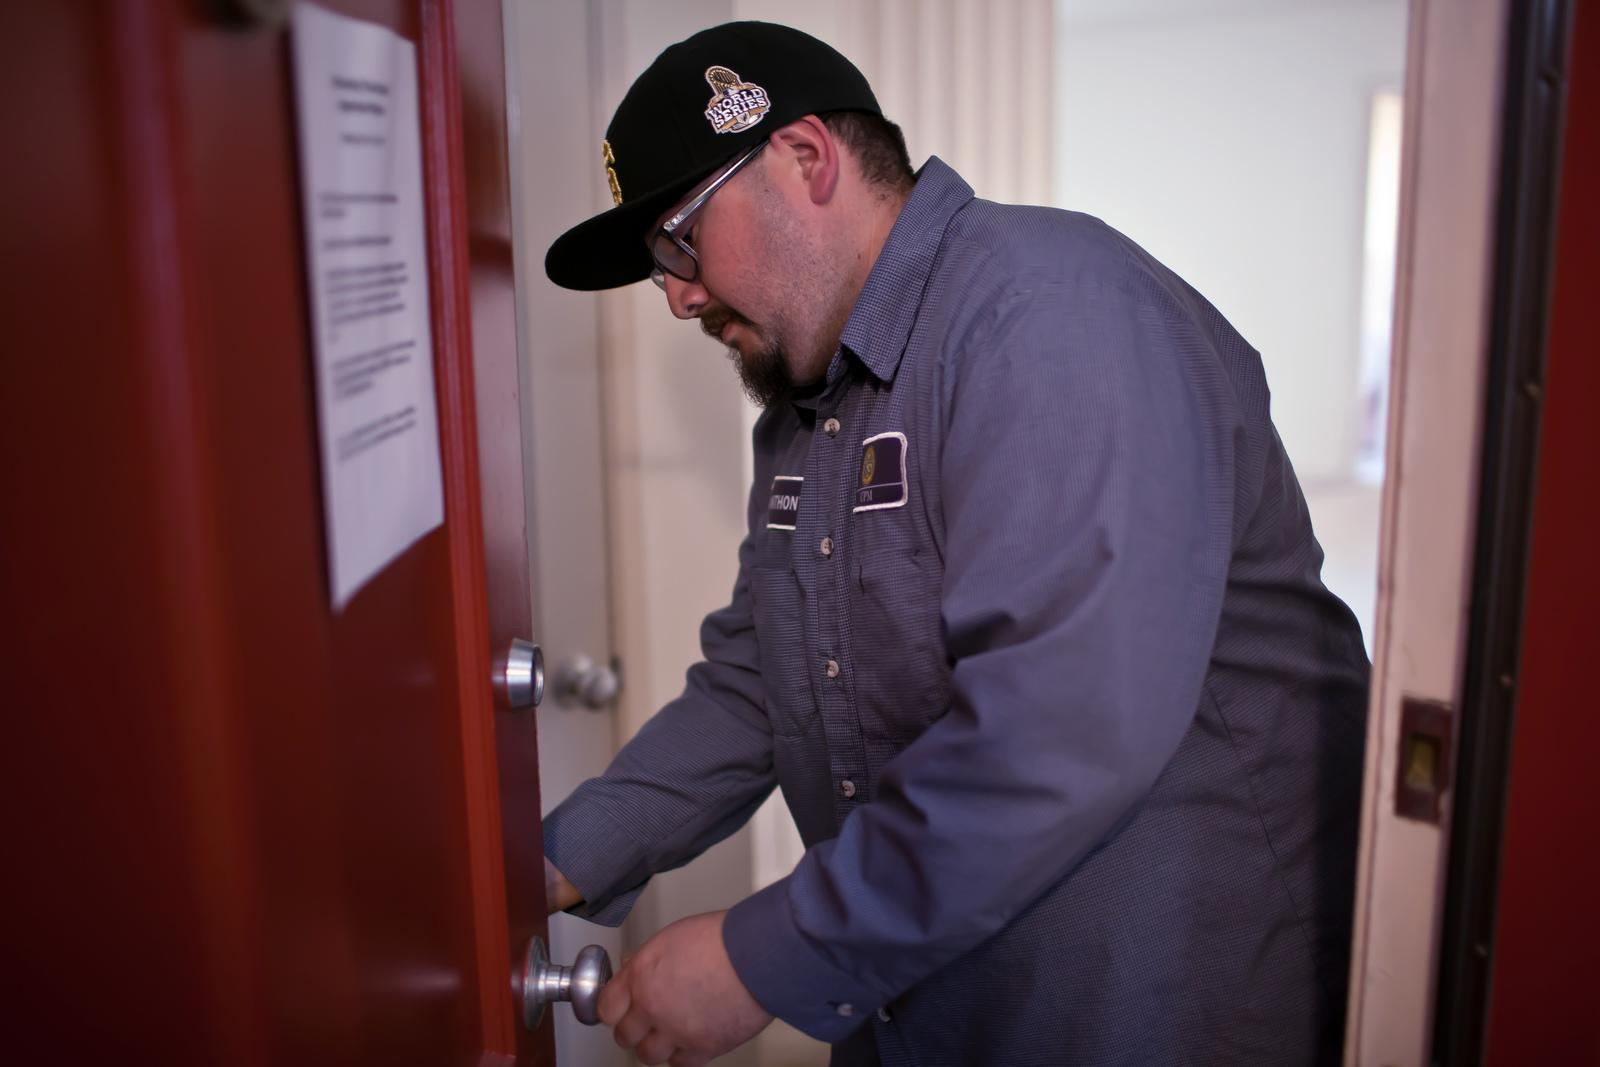 University employee, Andrew Cobo-Mier, changes the lock on a vacant apartment in University Park North on Tuesday, Oct. 29. The lock change is the first of over 1,300 that will be performed in the next few days in response to a stolen master key. Photo by Dariel Medina / Xpress.